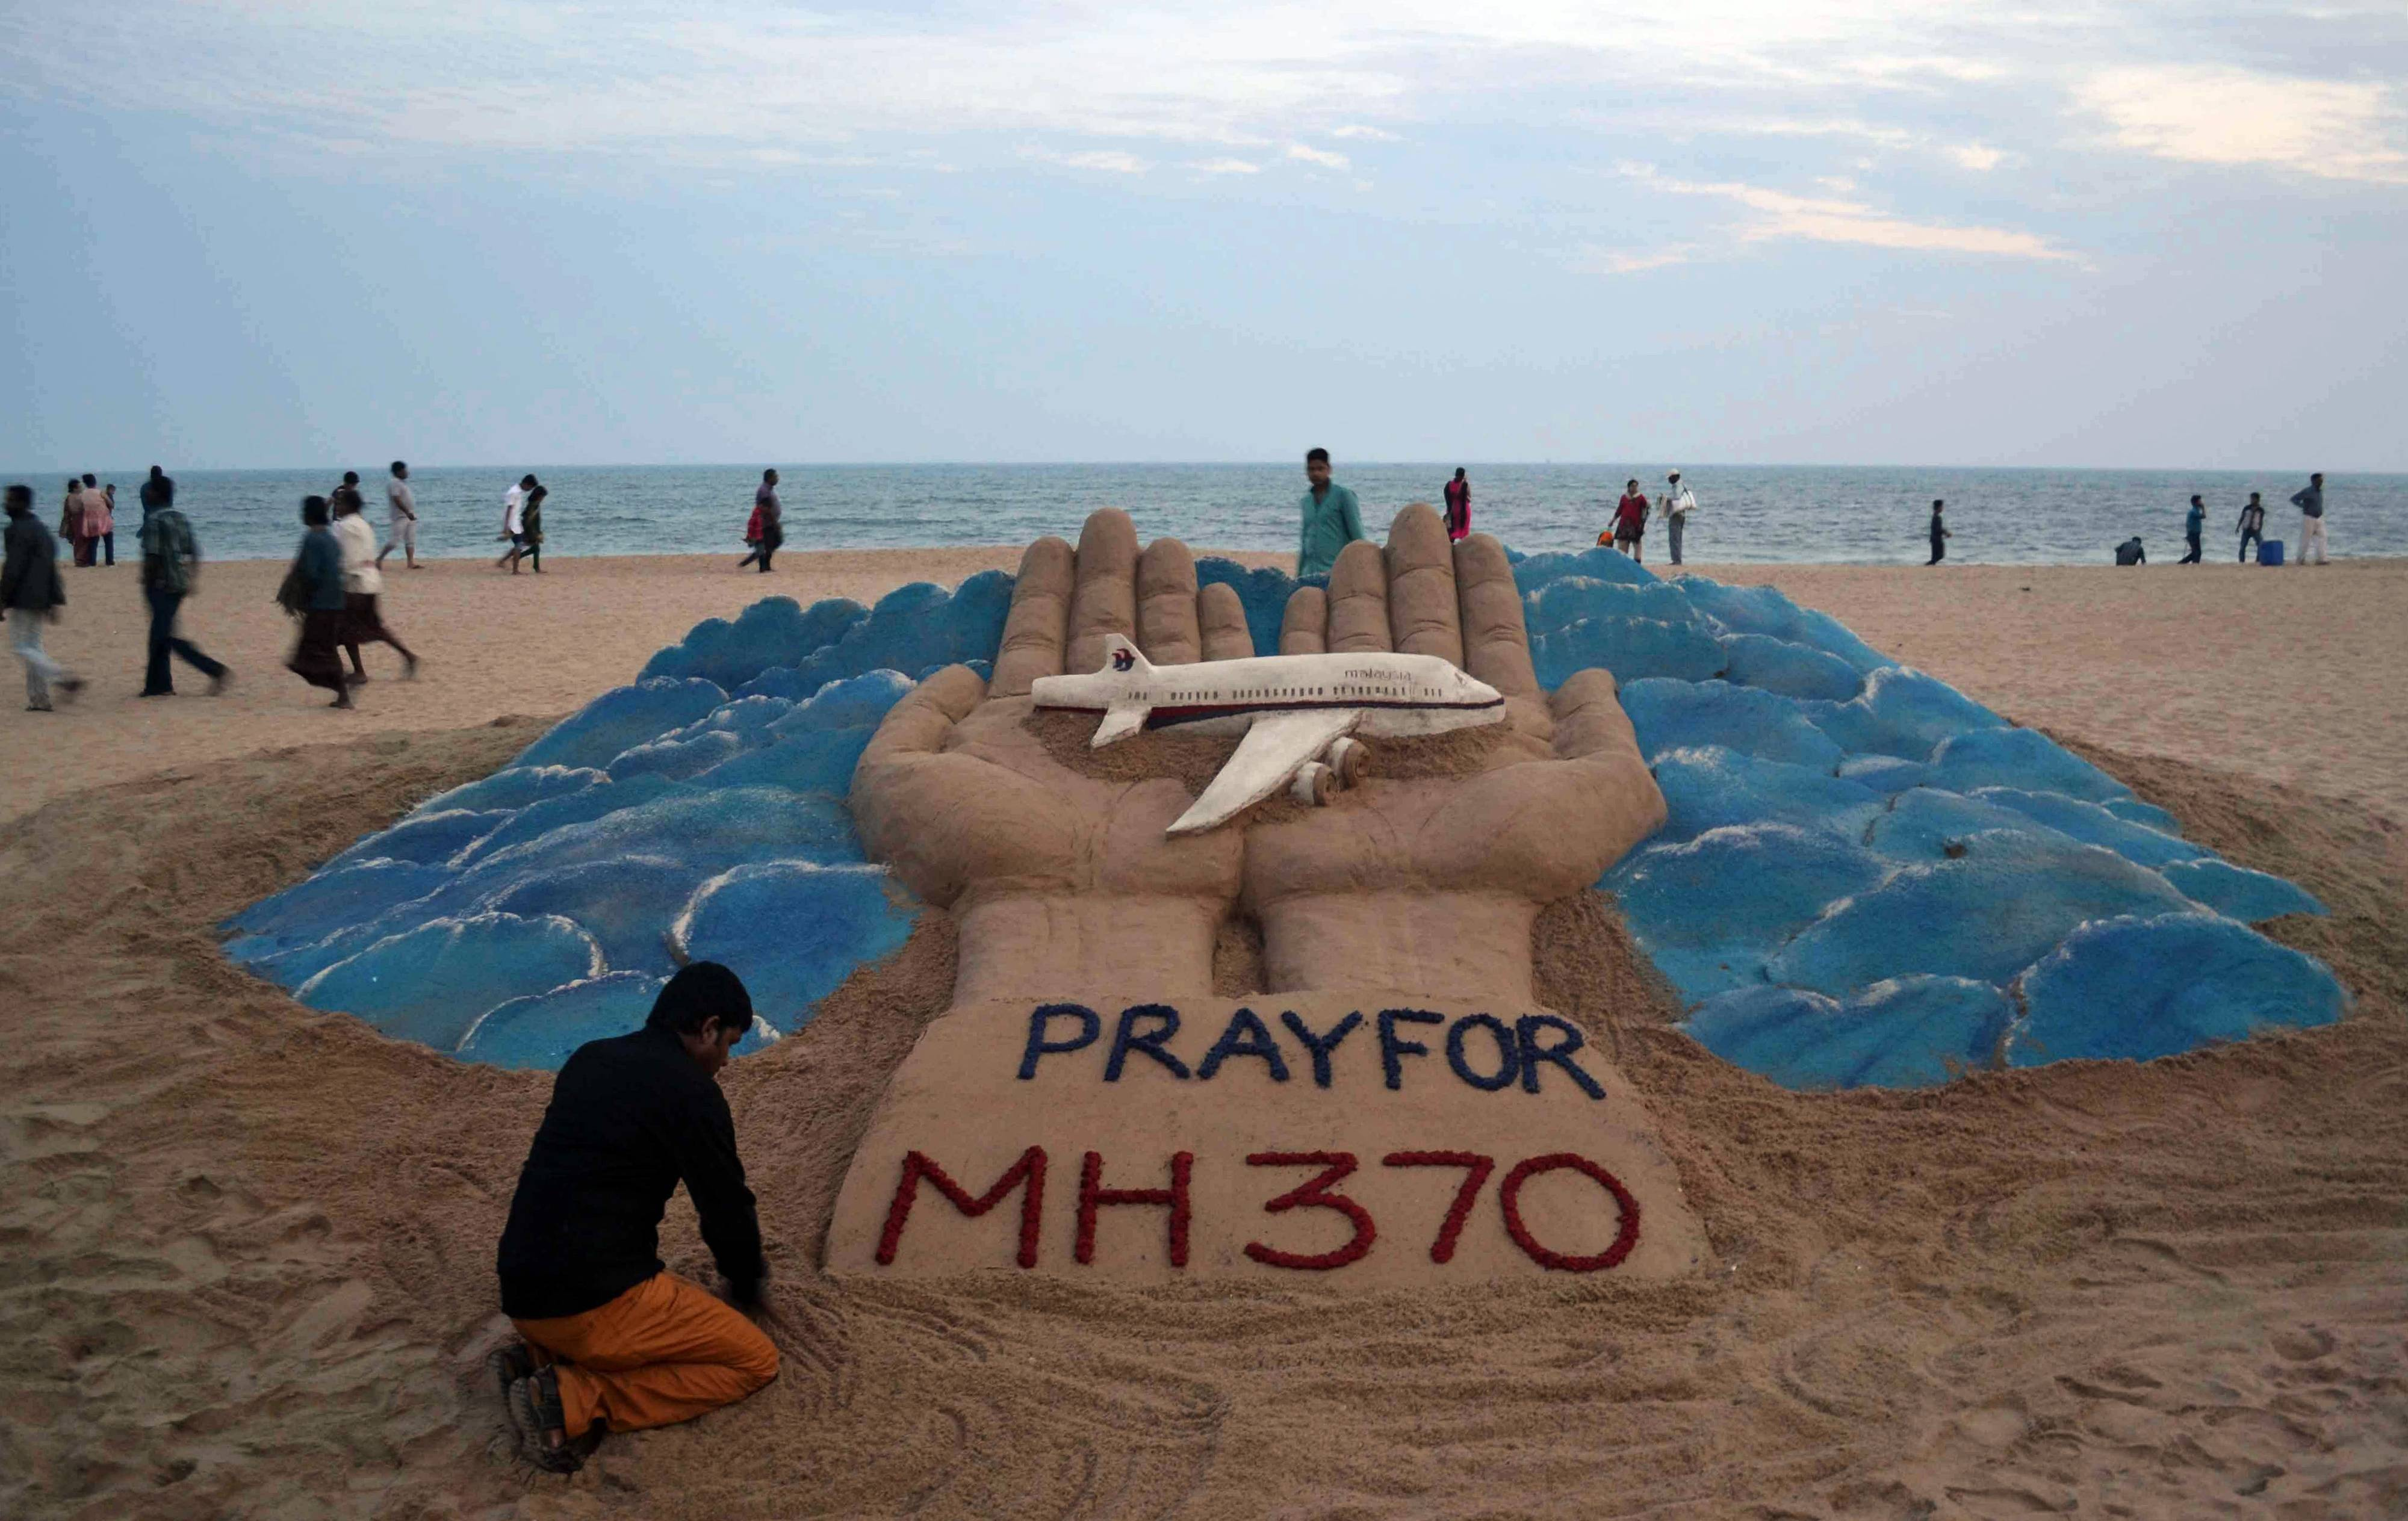 Malaysian response to missing plane under scrutiny